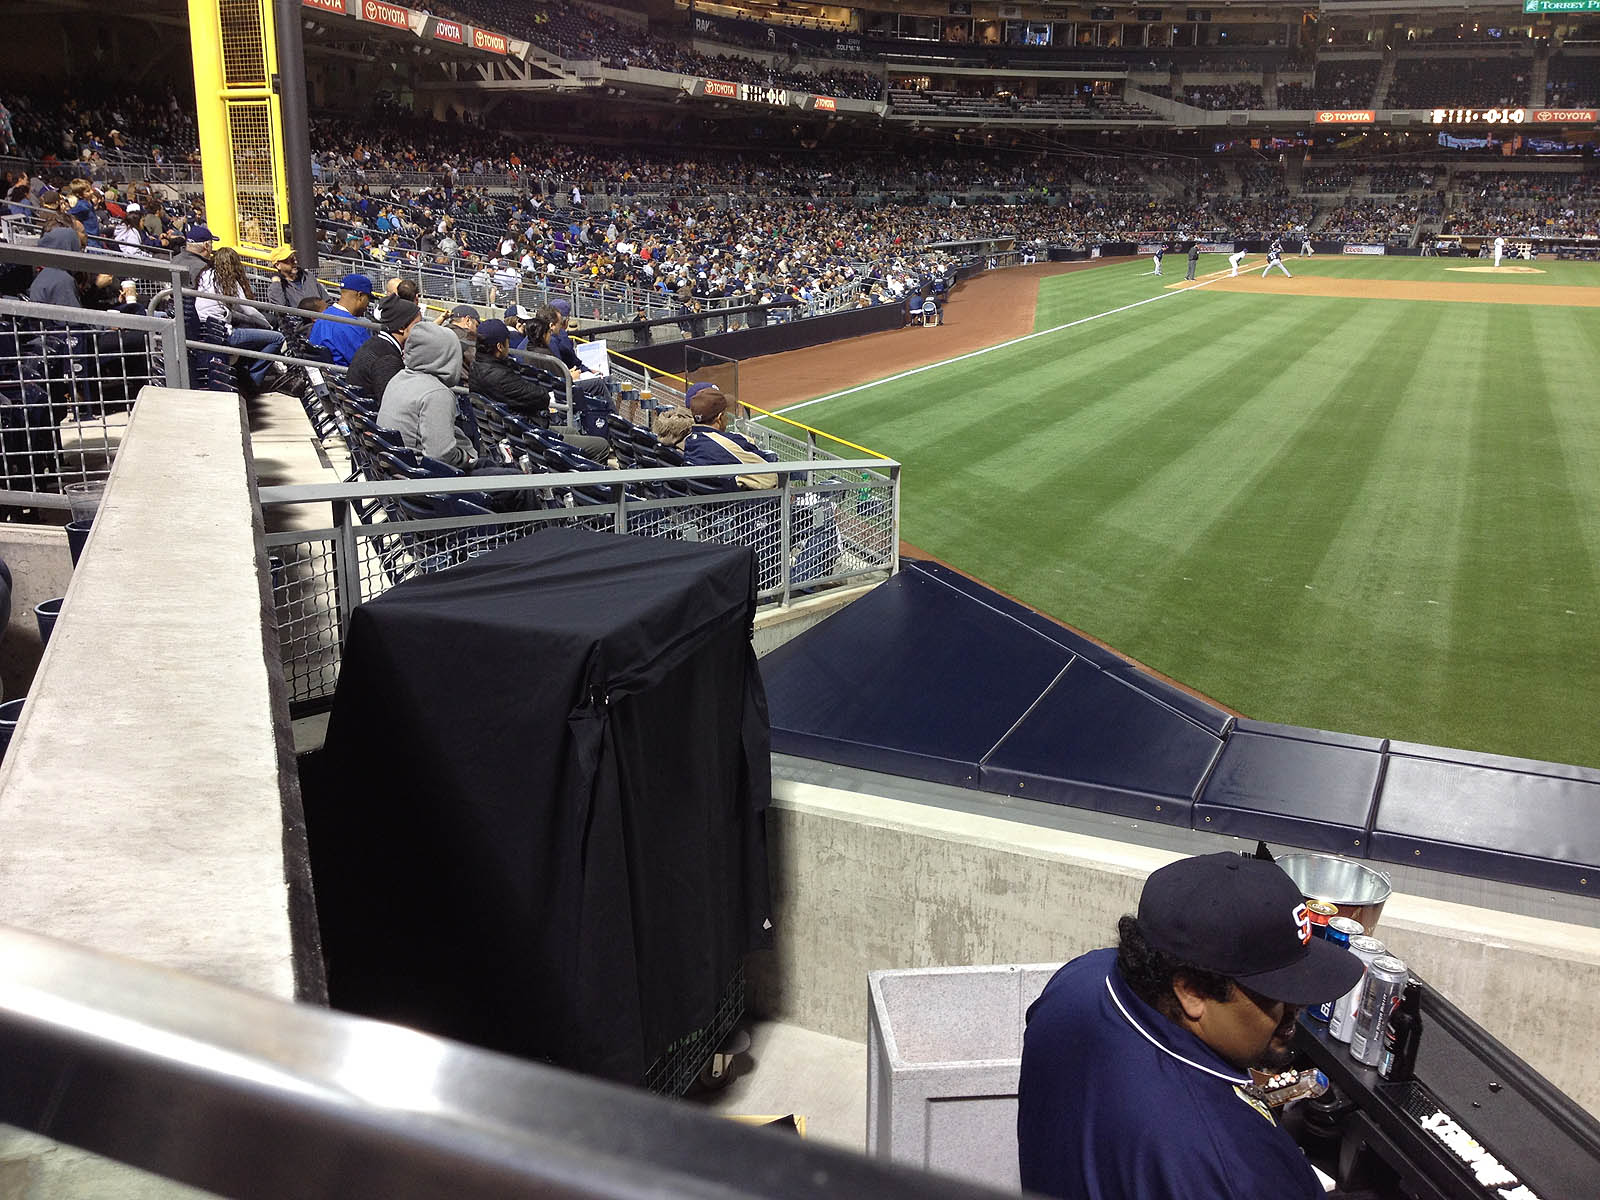 Can You Bring Food Into Petco Park